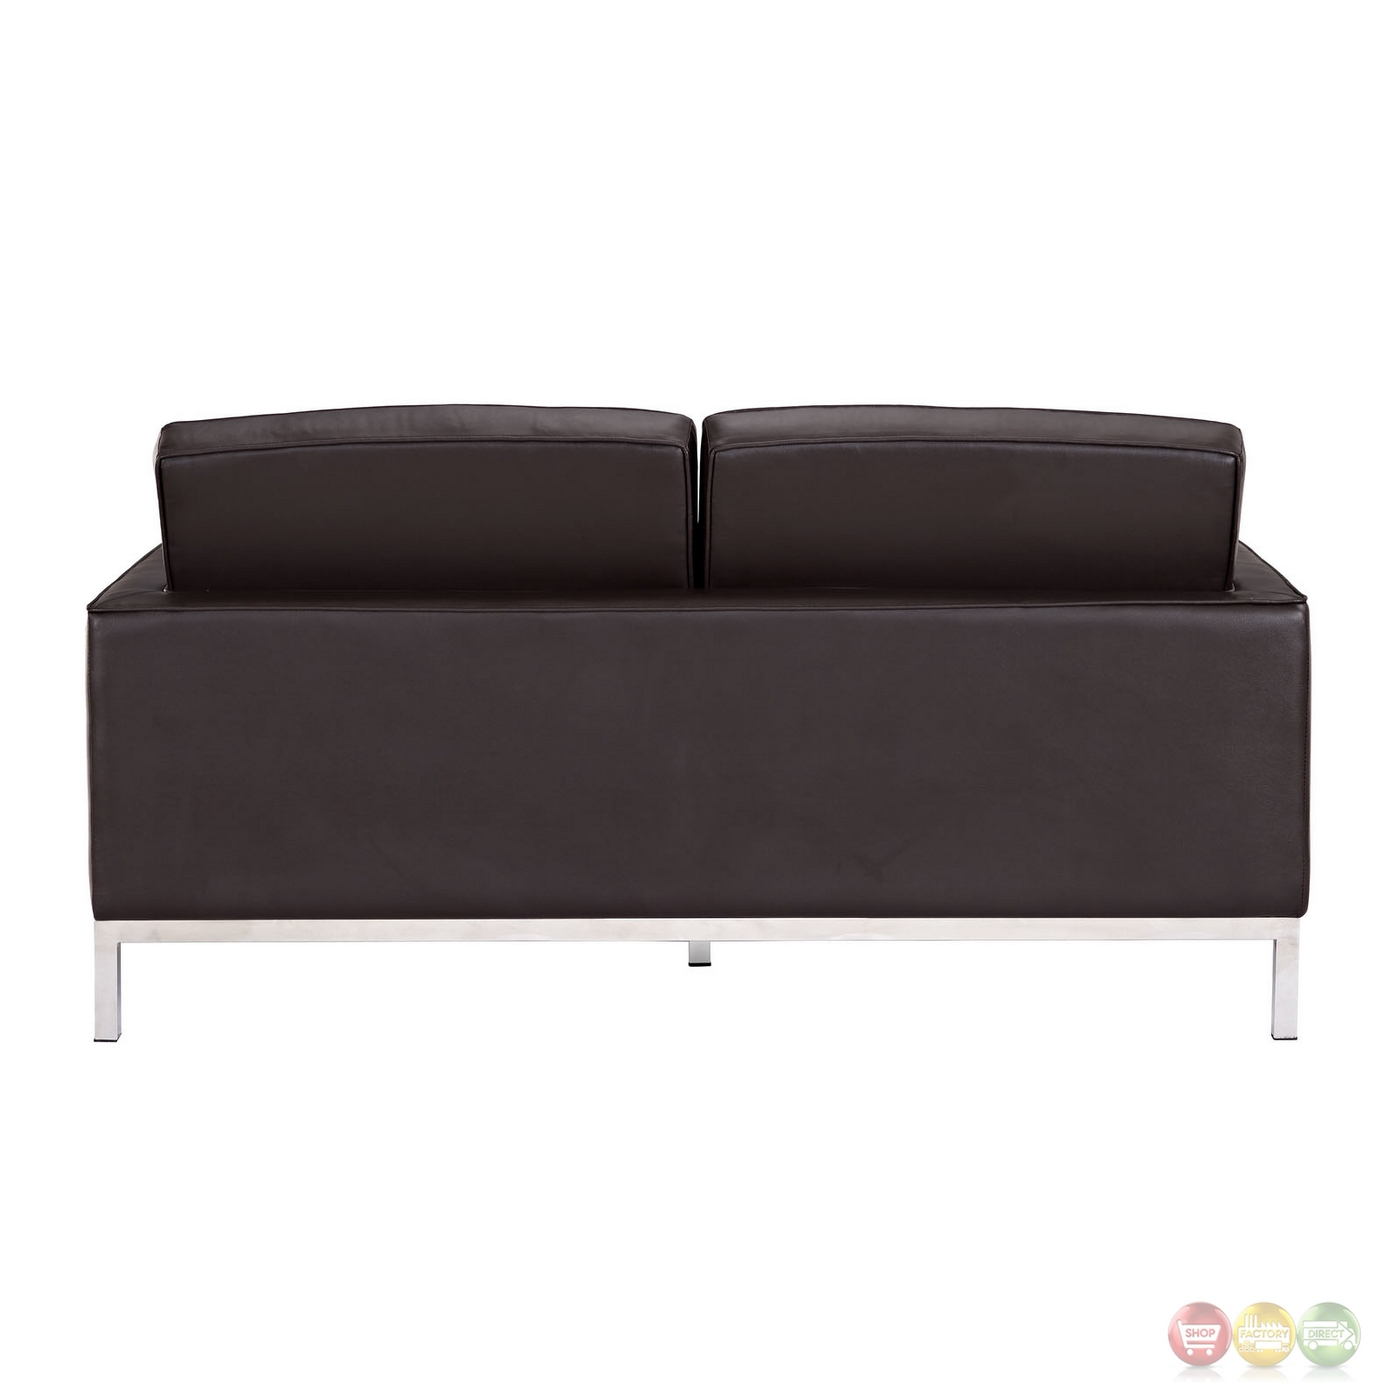 Loft Modern Button Tufted Leather Loveseat With Steel